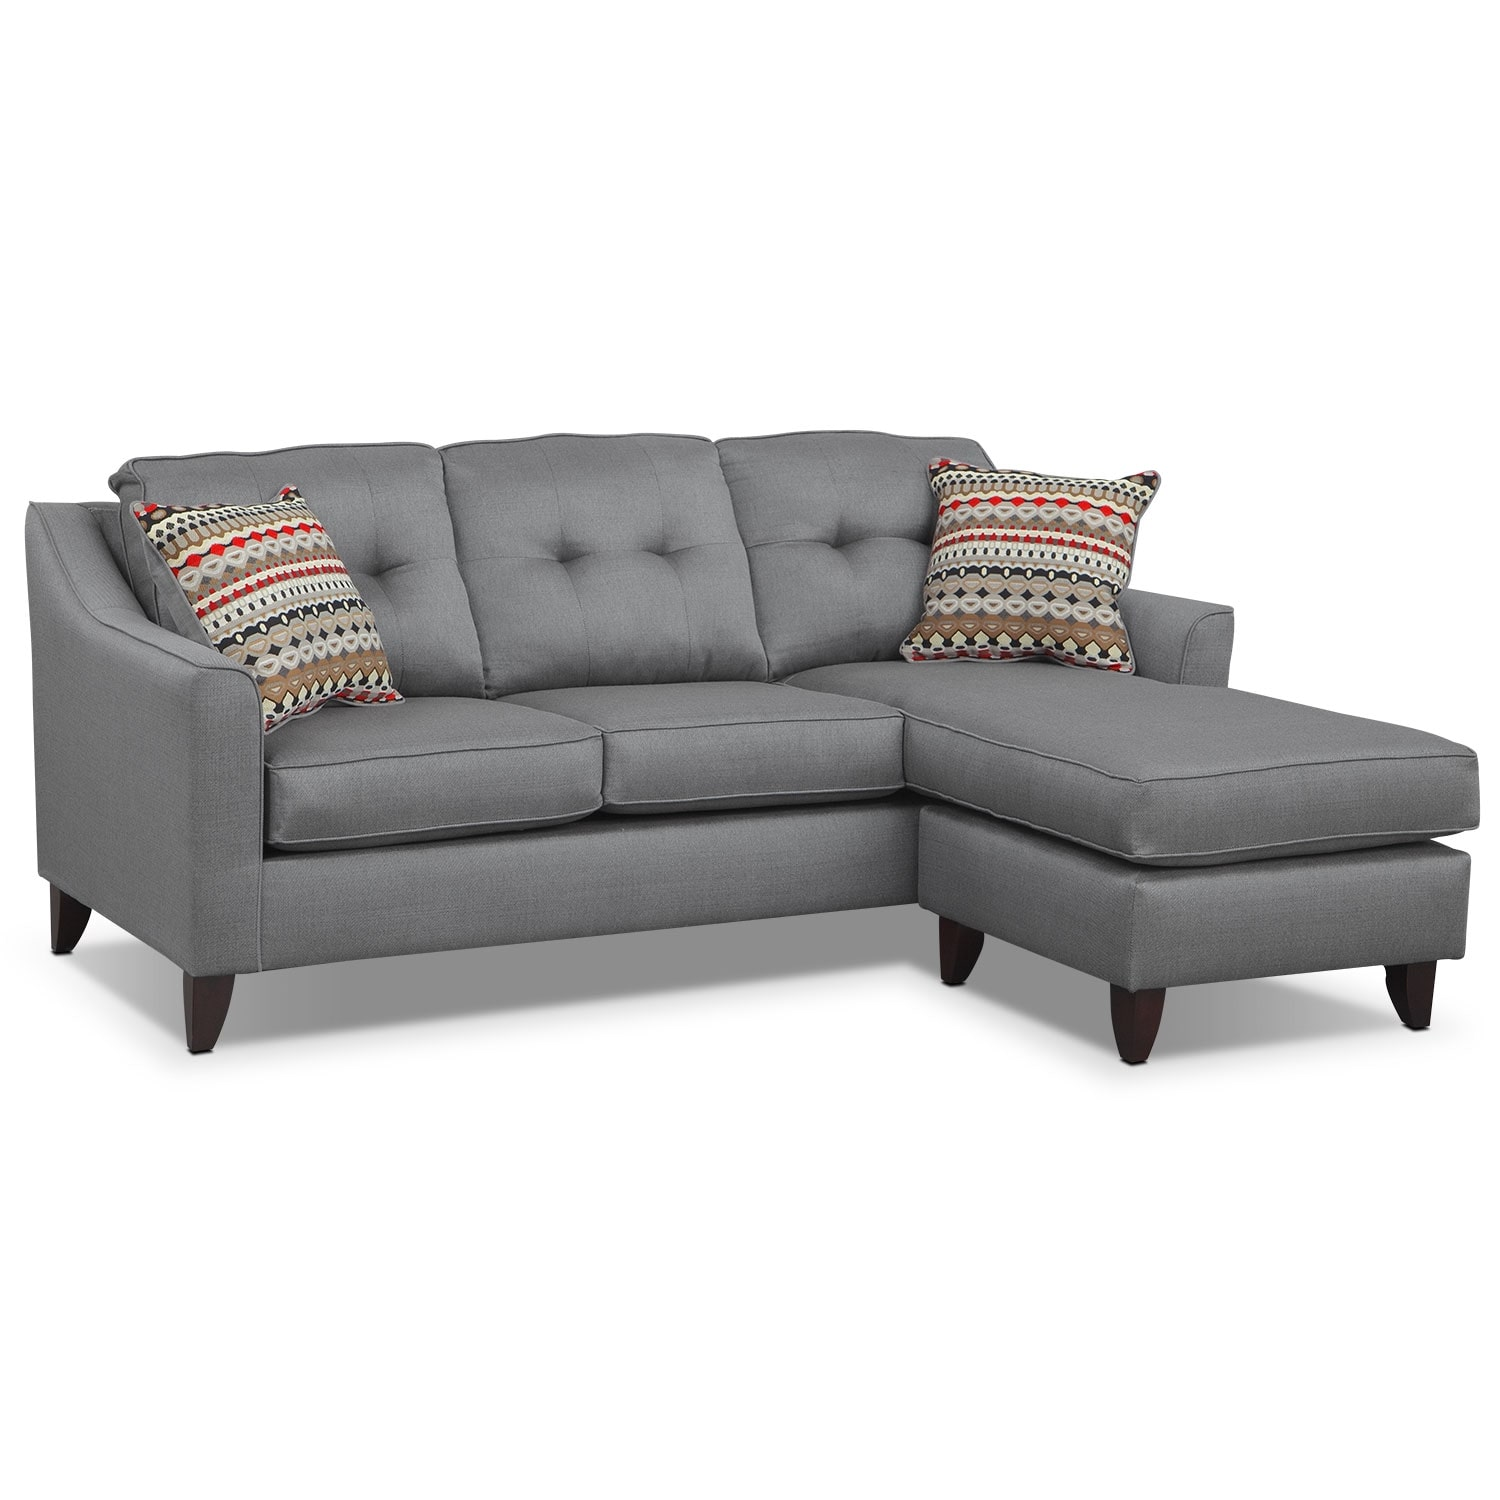 free grey gray shipping abbyson light with sectional garden in product chaise home sofa